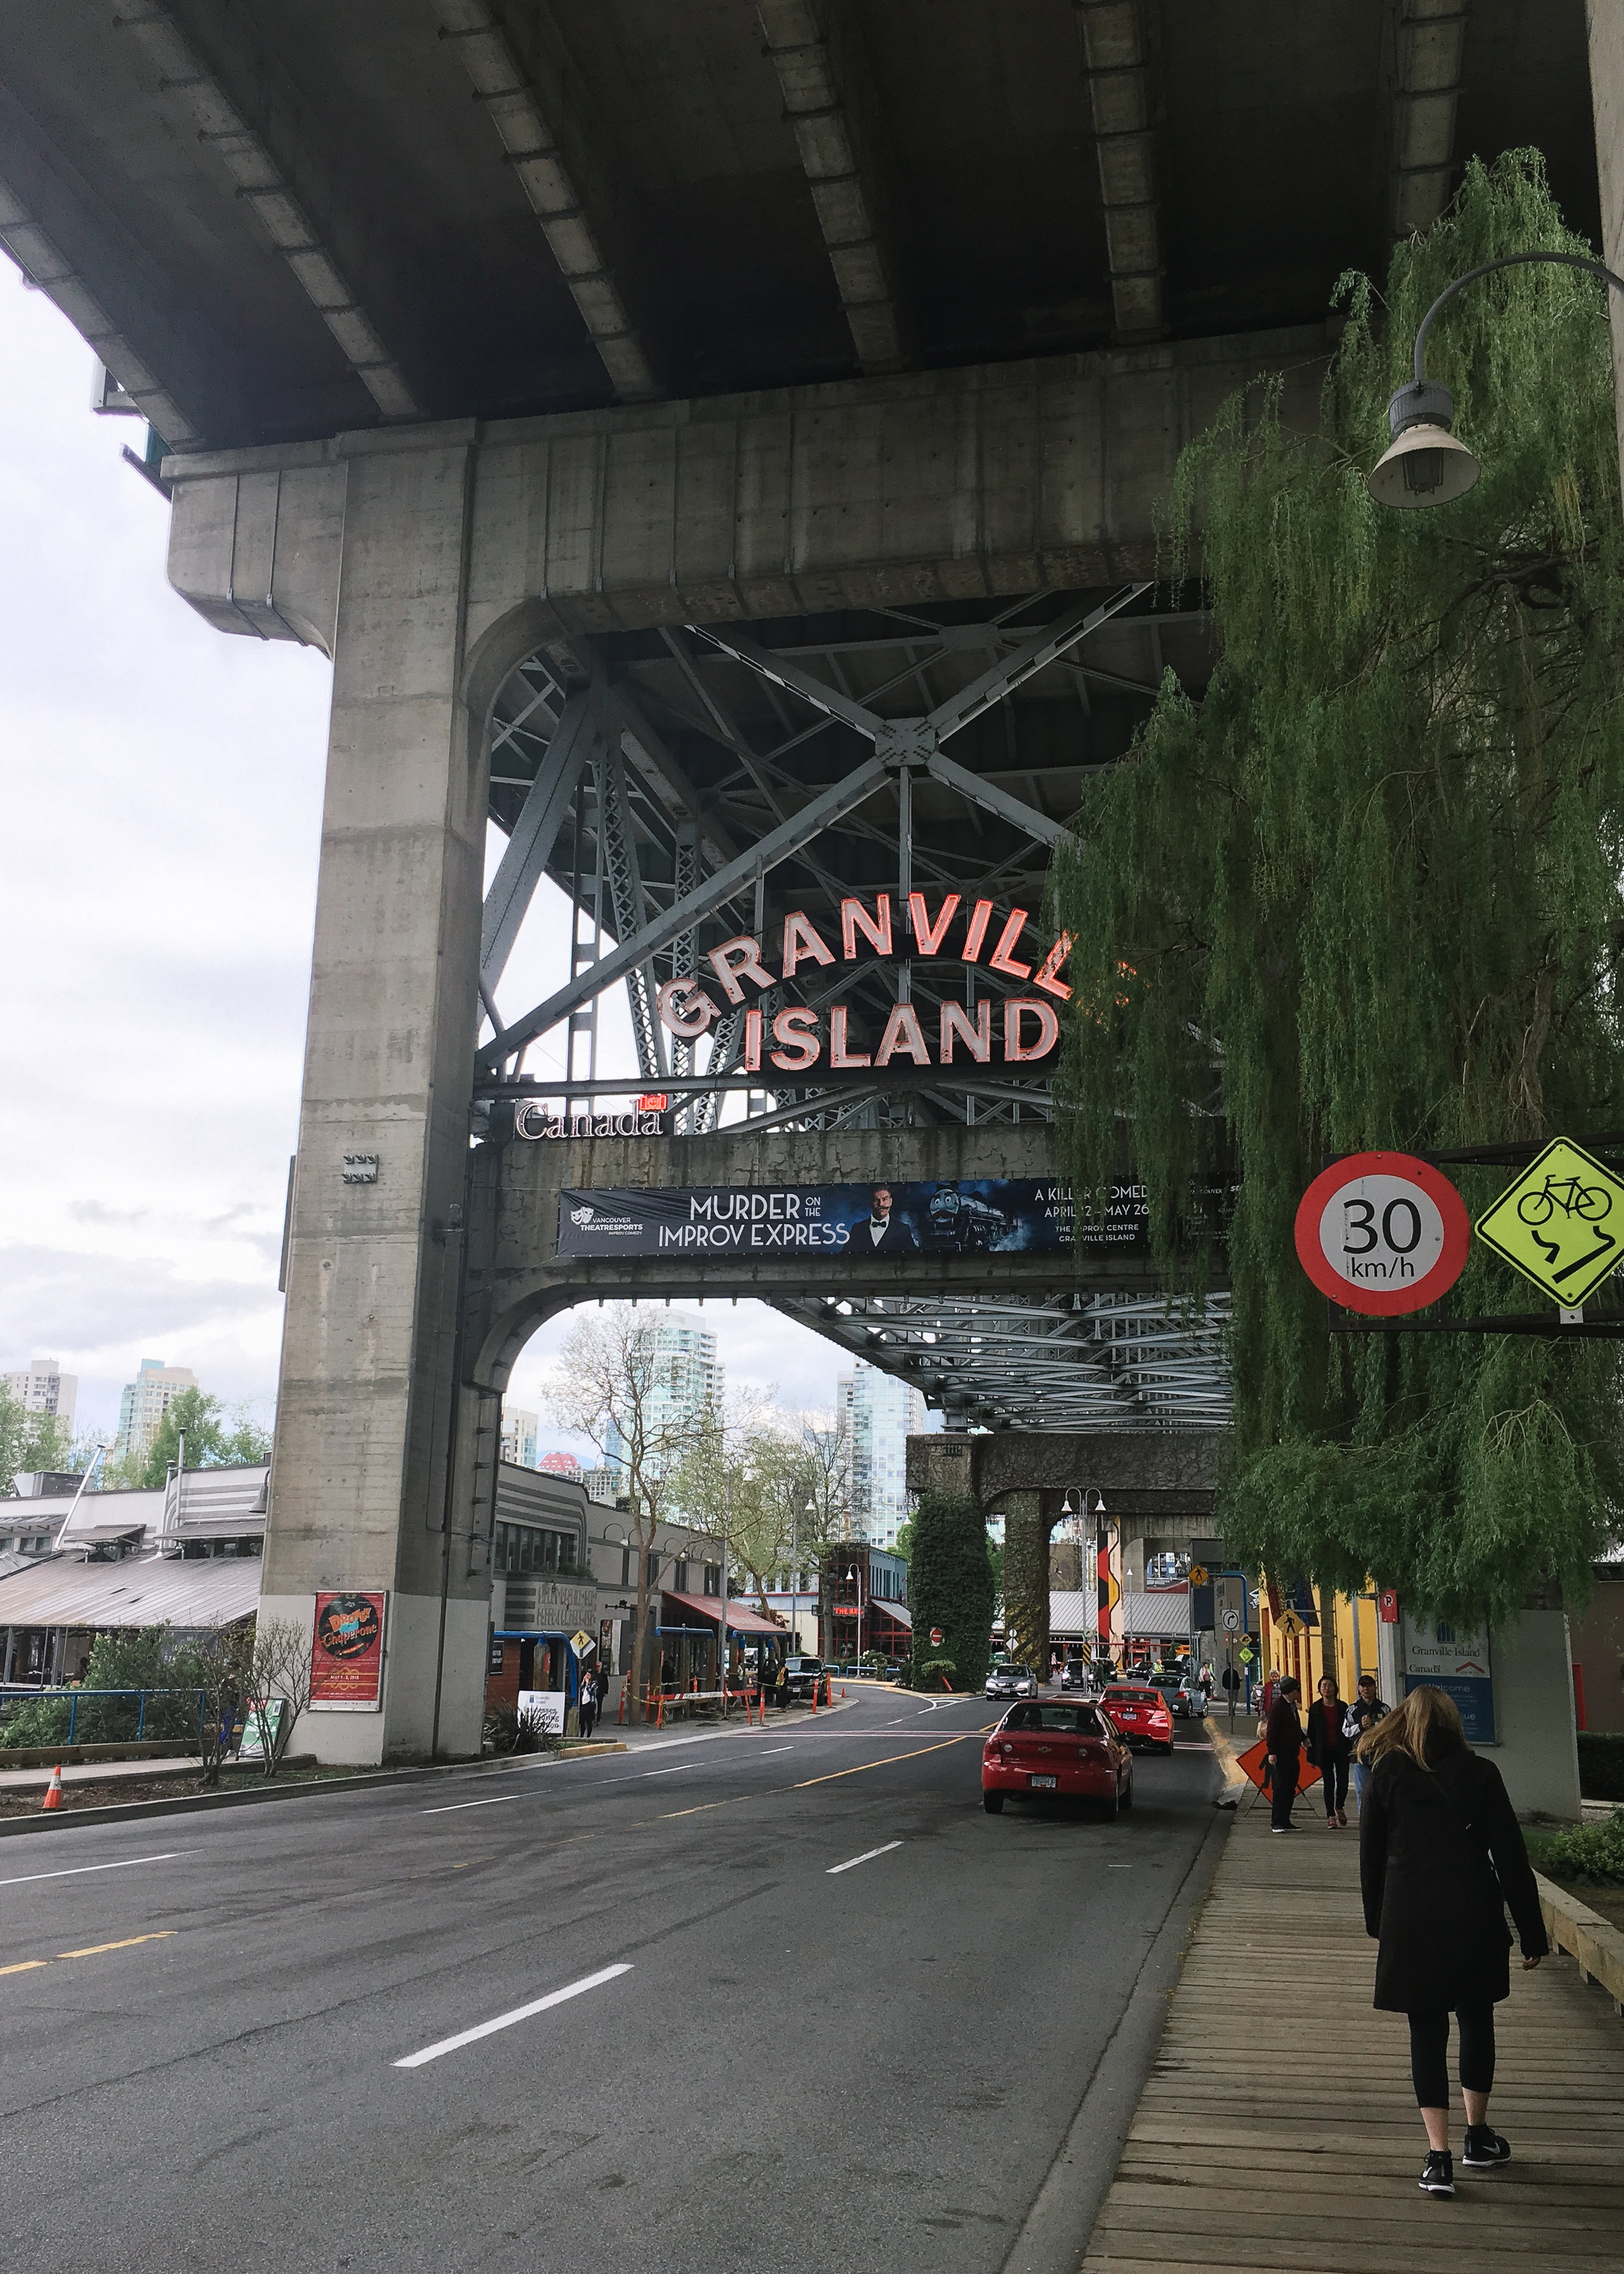 Gab then took me to Granville Island, which isn't exactly an island.